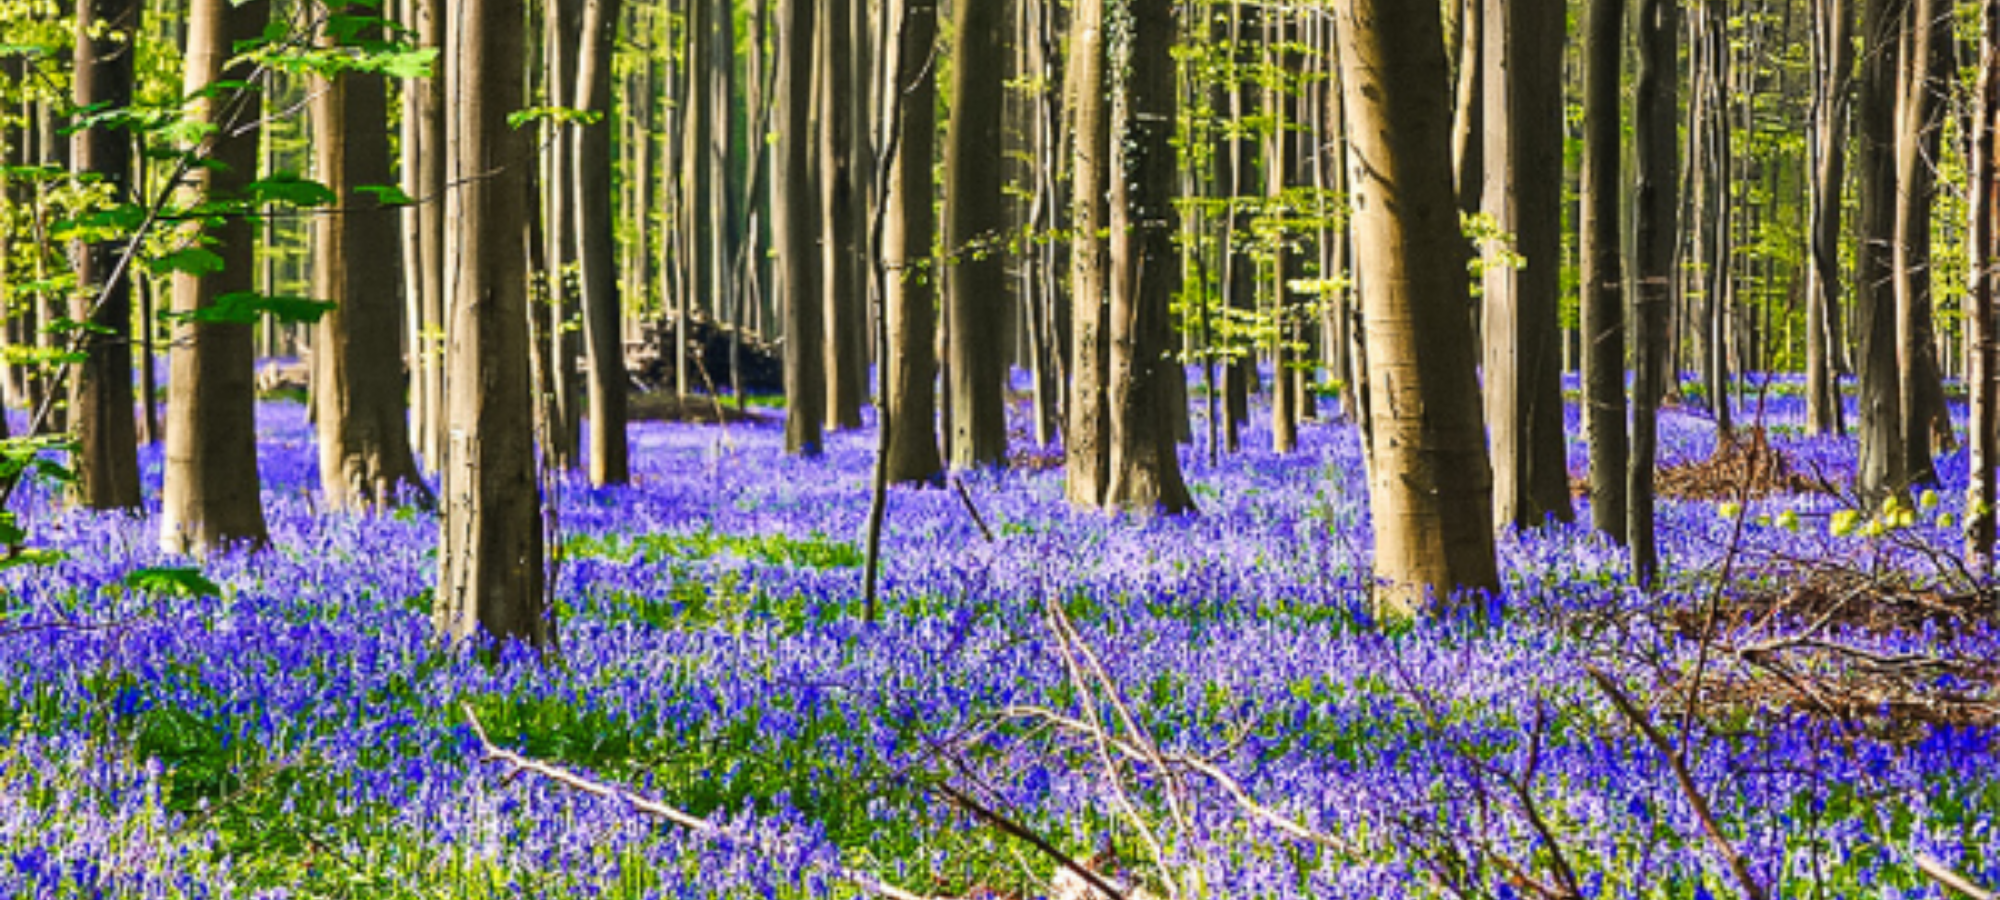 A woodland with many trees and a sea of bluebells at Hallerbos, Belgium